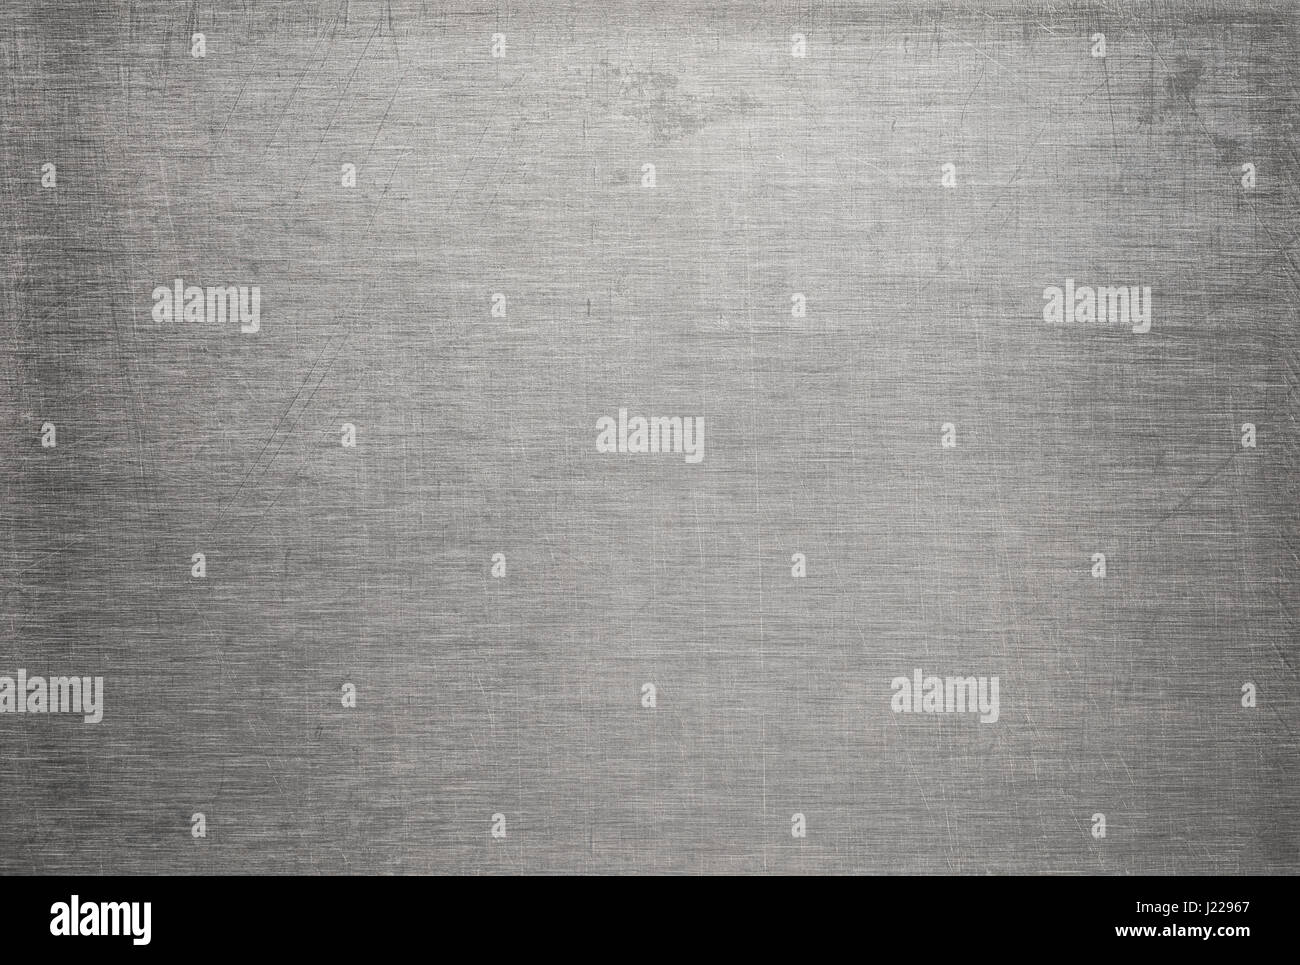 scratched metal texture - Stock Image